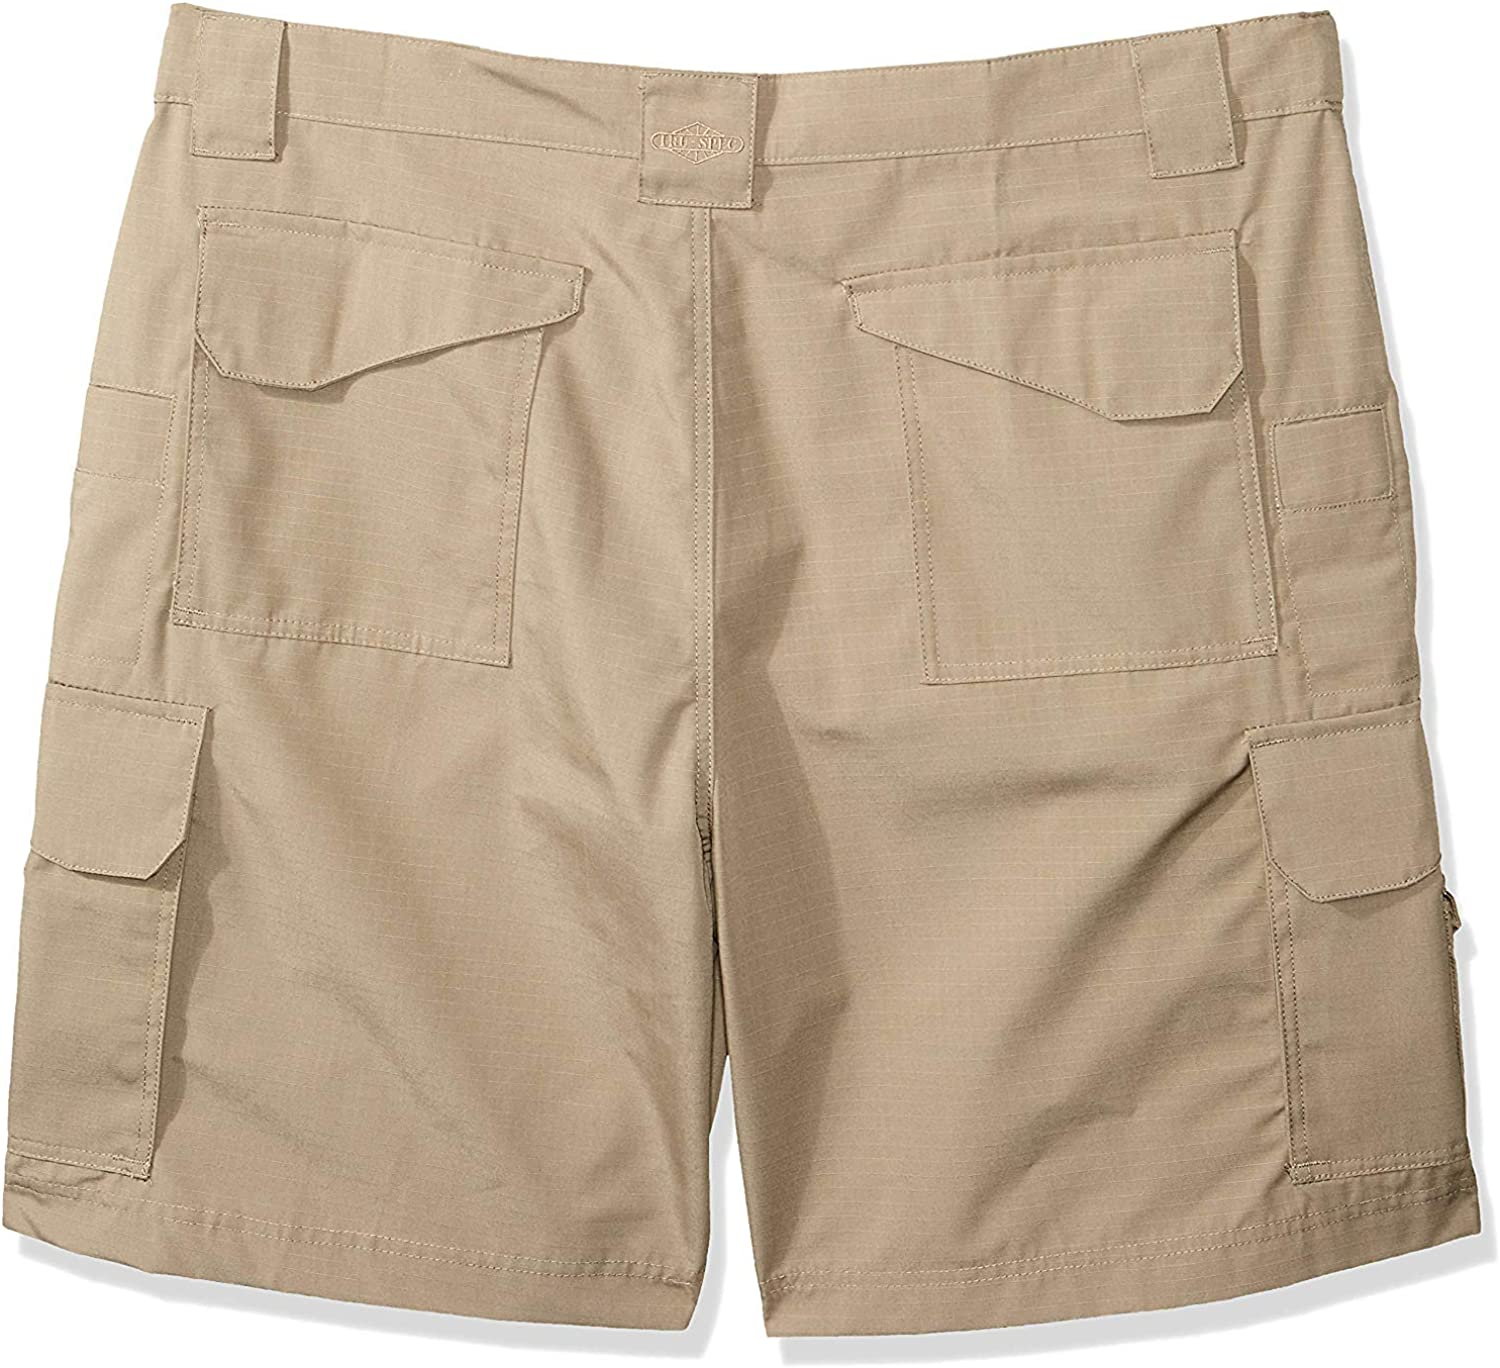 Tru-Spec Men's 24-7 Series Tactical Shorts, Stone Khaki